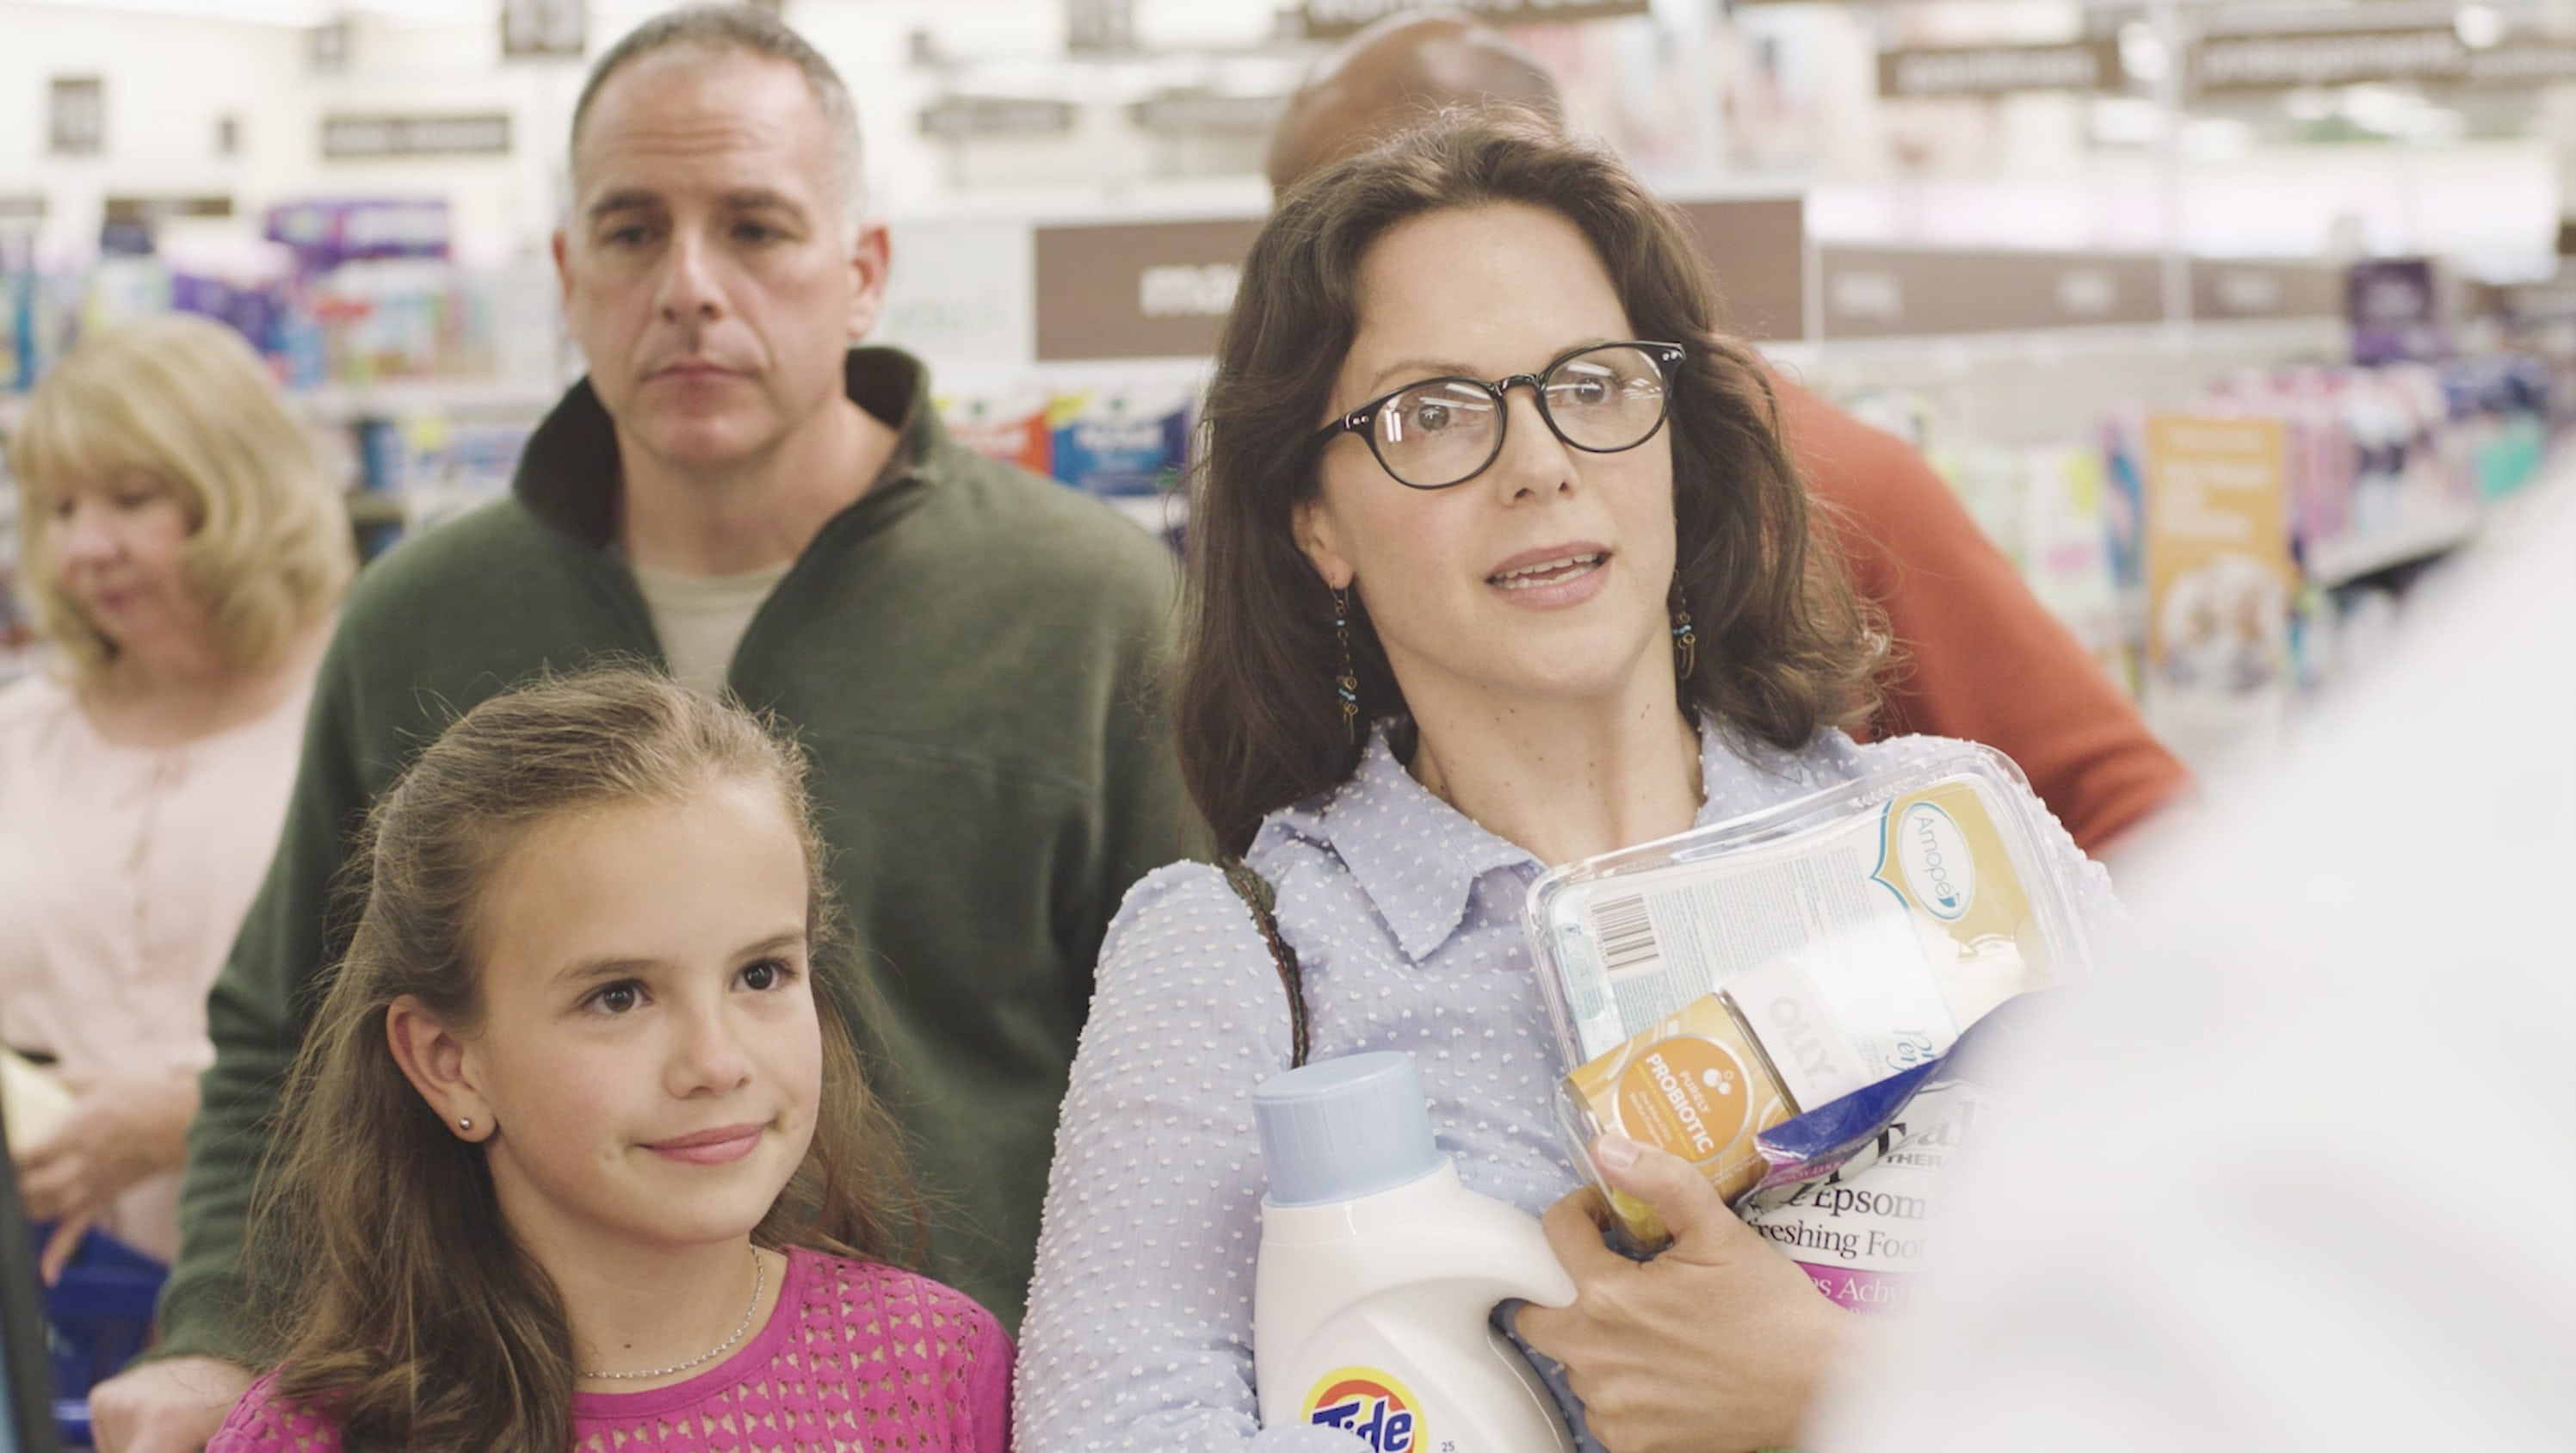 A frazzled, bespeckled mother with many items in her arms stands in line at the store with her blonde daughter